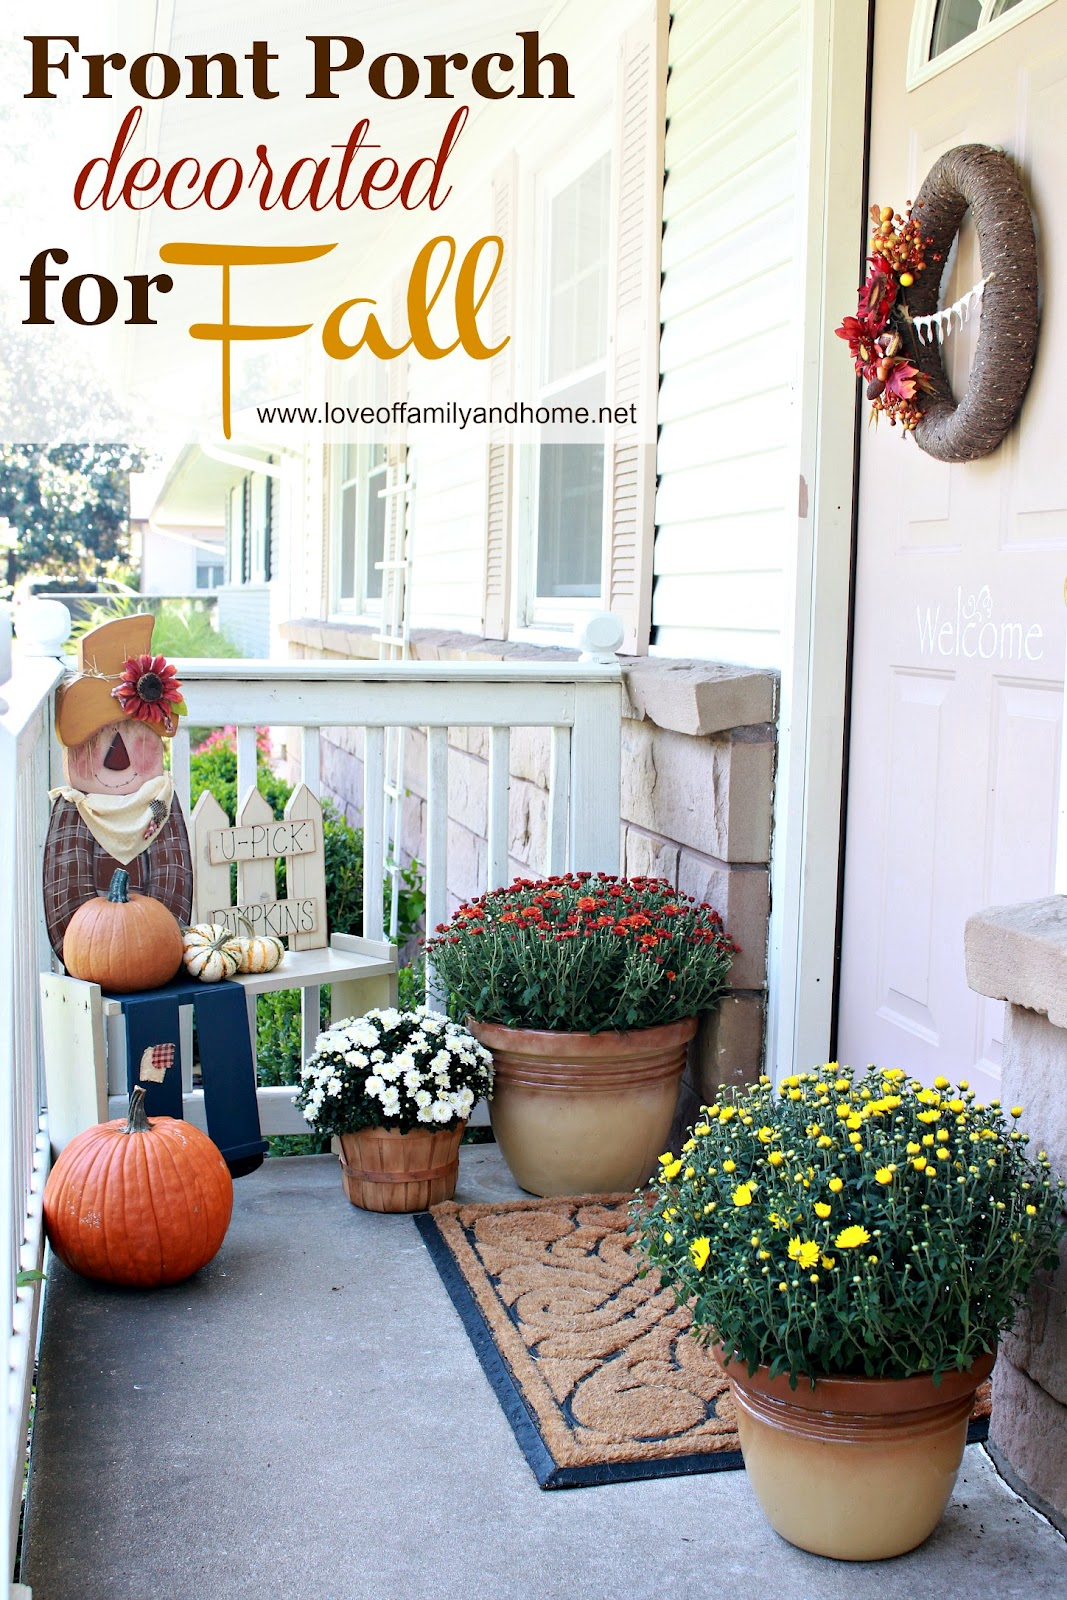 Front porch decorated for fall love of family home Small front porch decorating ideas for fall